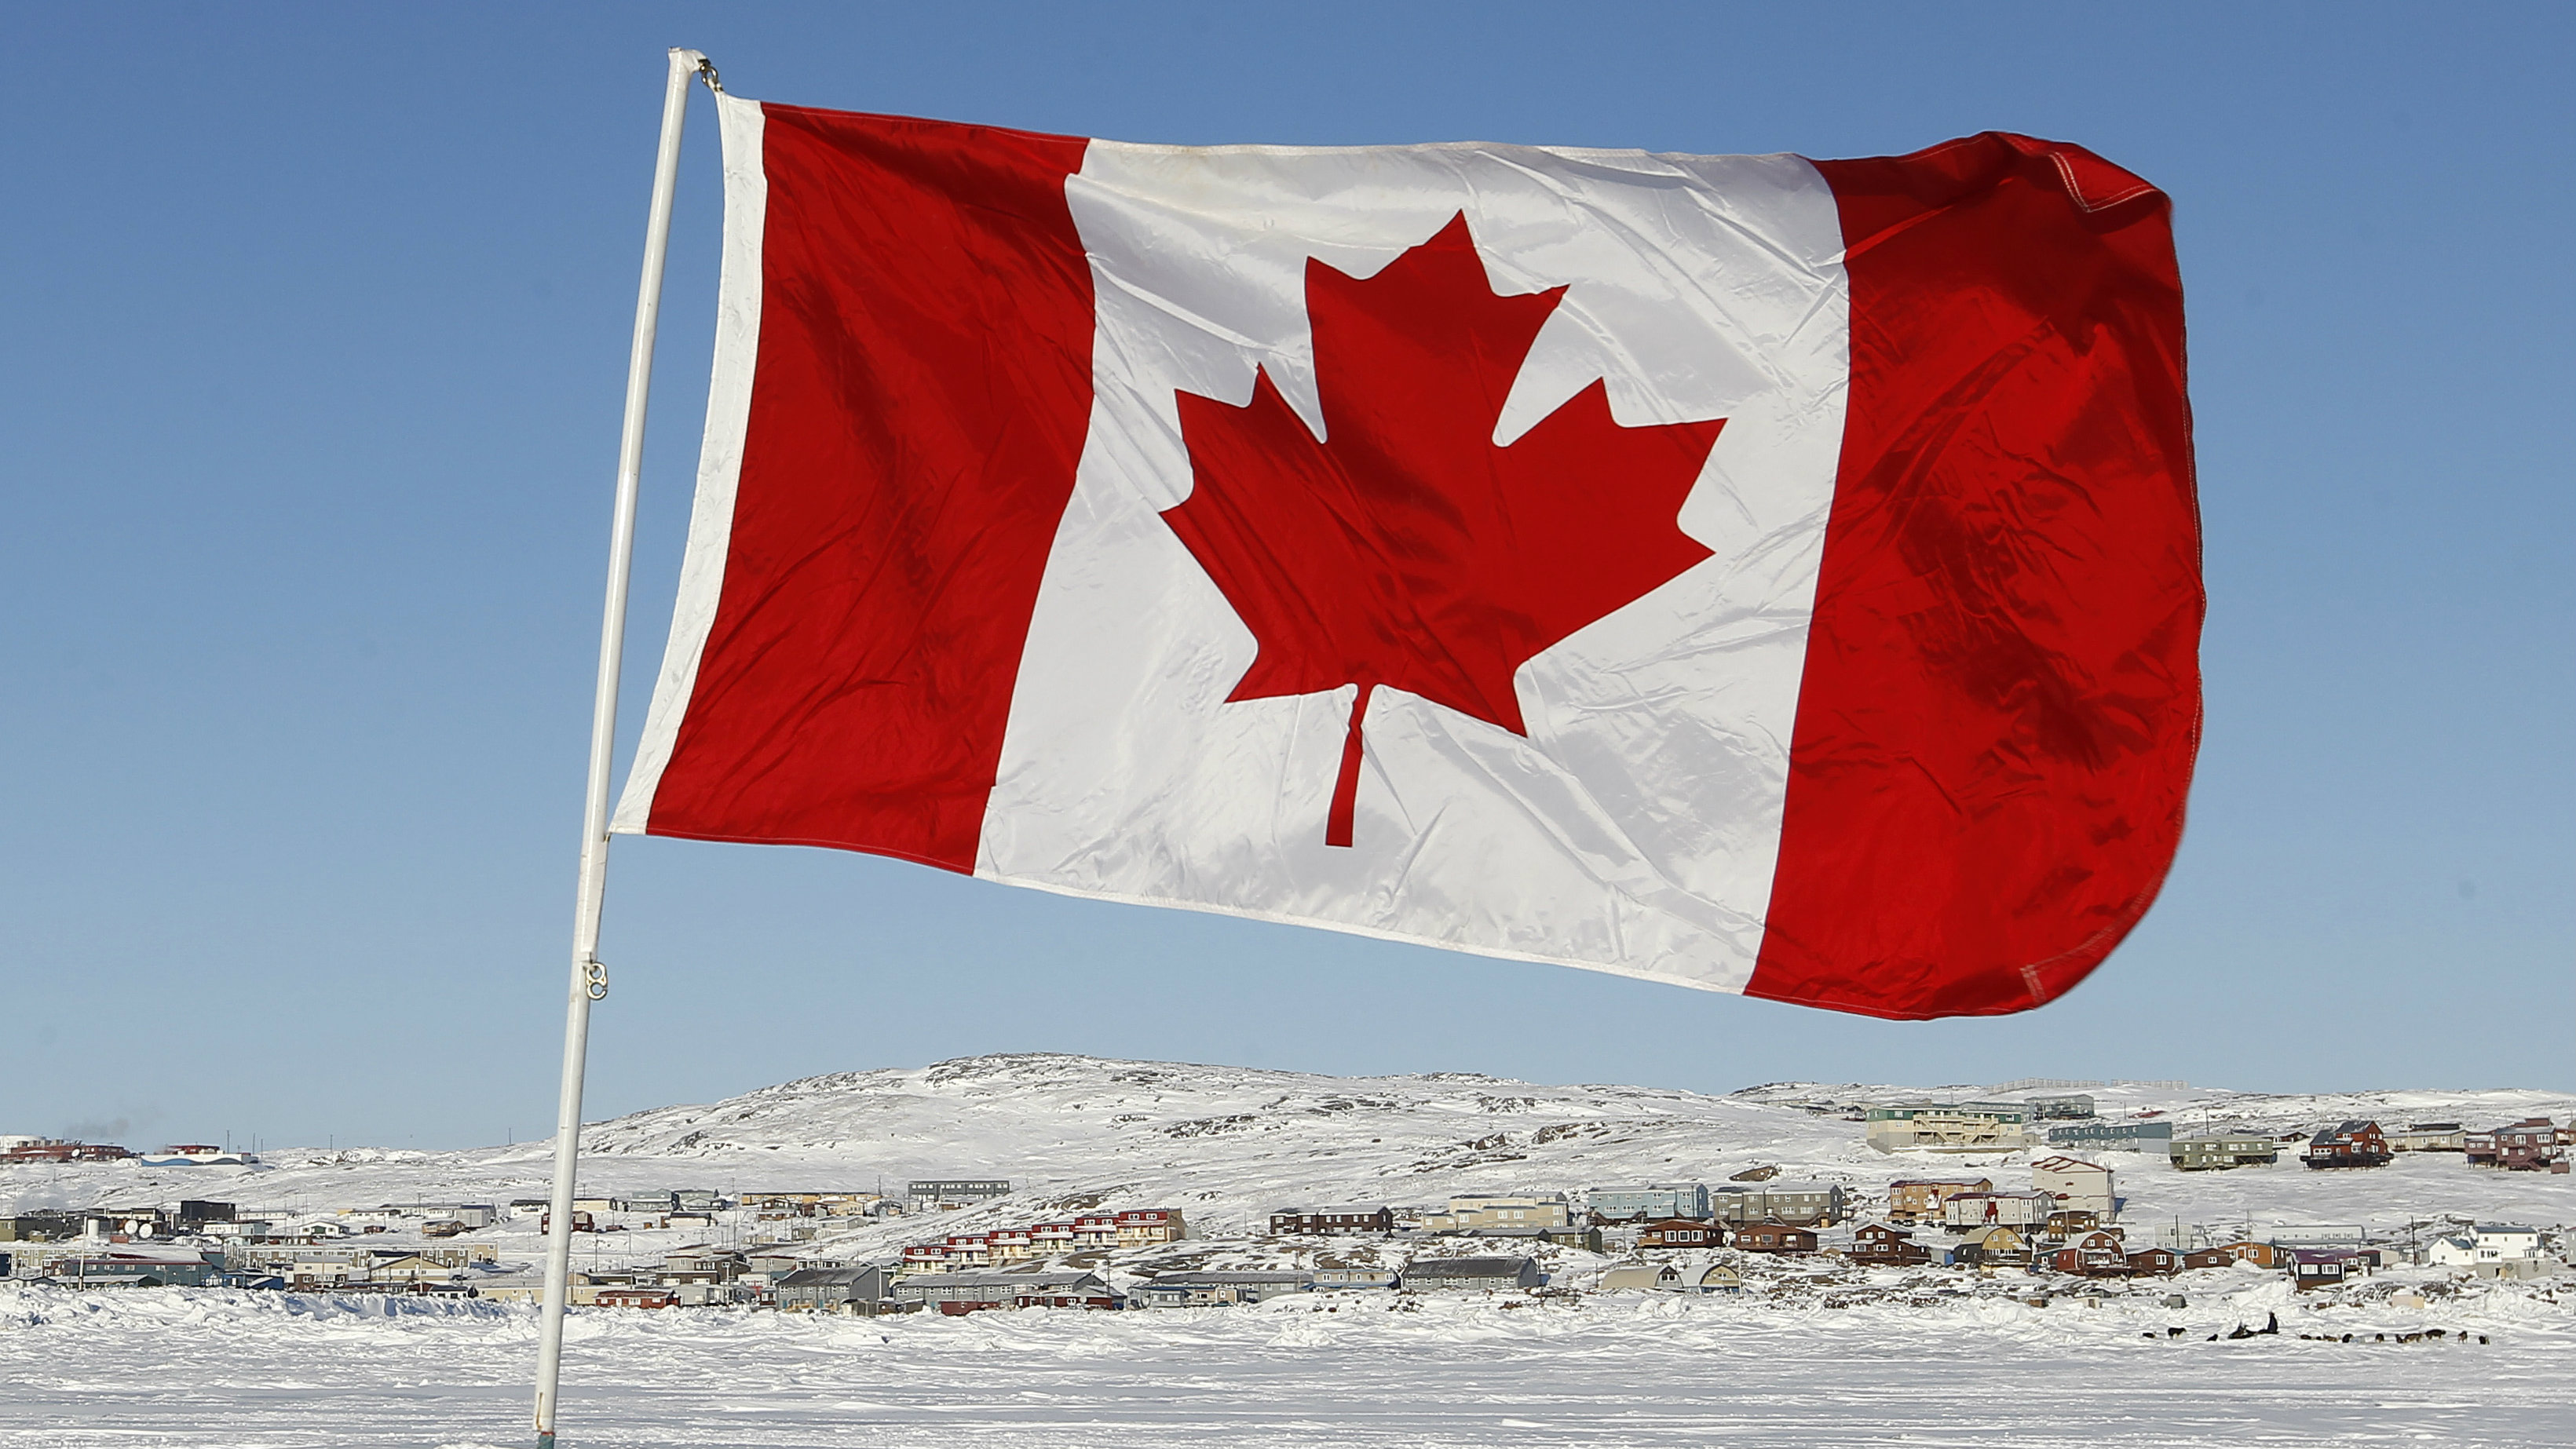 A Canadian flag is pictured on Frobisher Bay in Iqaluit, Nunavut February 23, 2012.